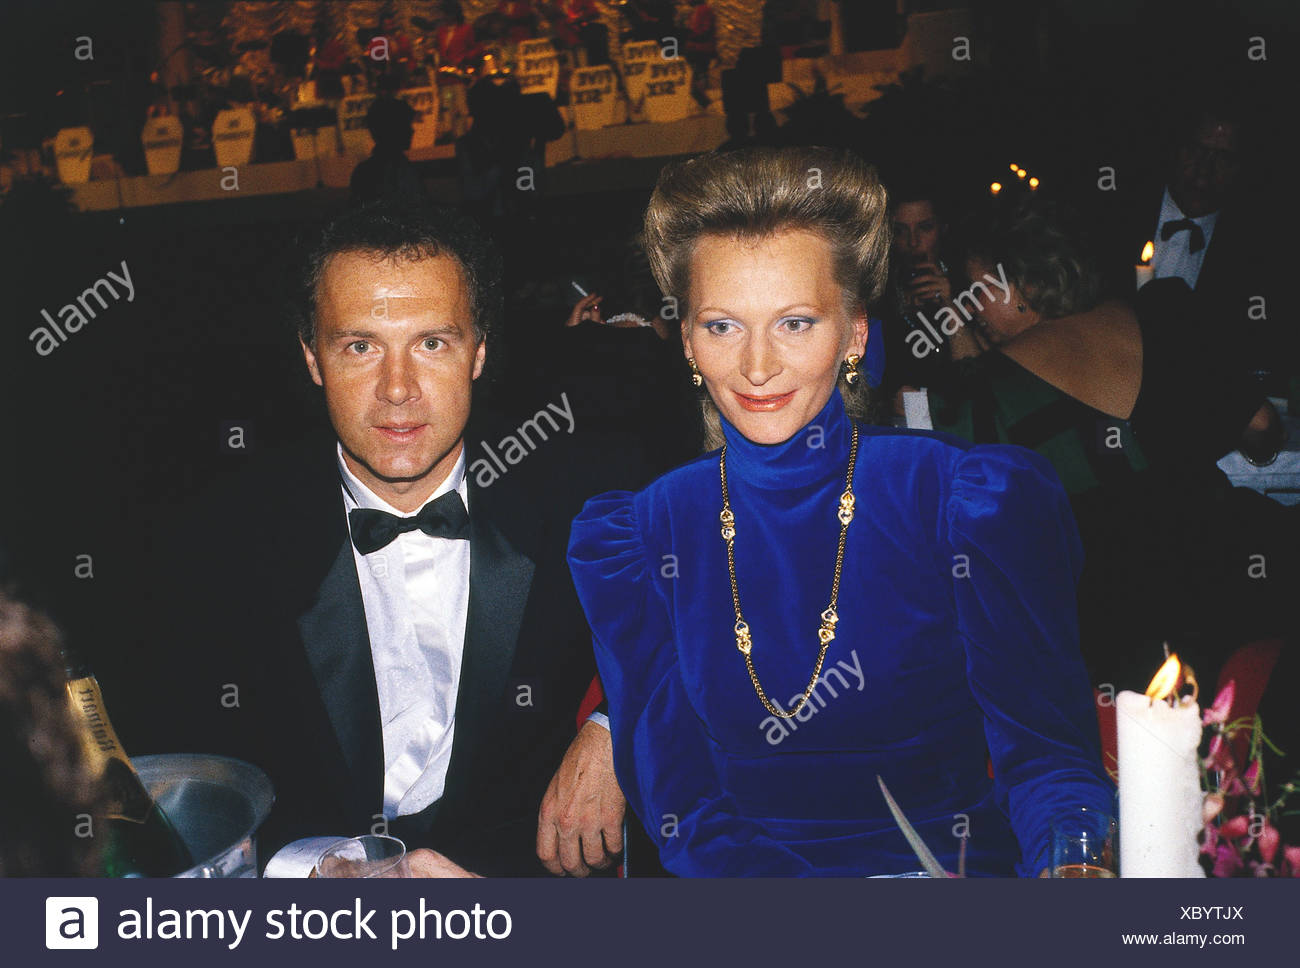 Beckenbauer, Franz * 11.9.1945, German football player, half length, with Diane Sandmann, 1980s, soccer, - Stock Image